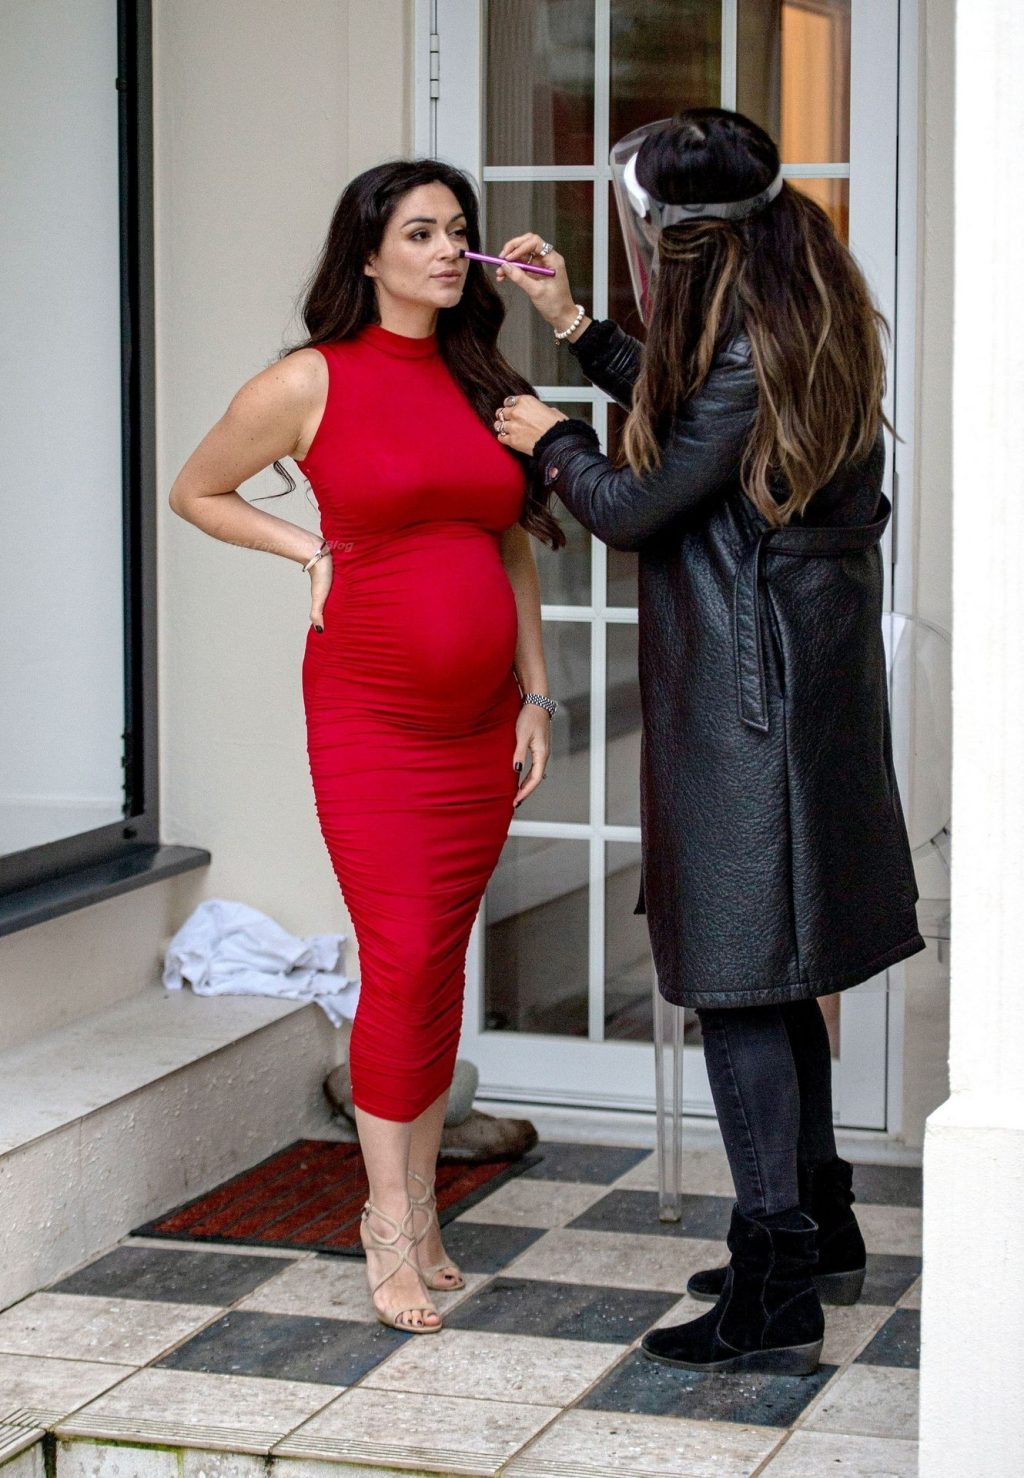 Casey Batchelor Shows Off Her Baby Bump in a Red Dress (14 Photos)